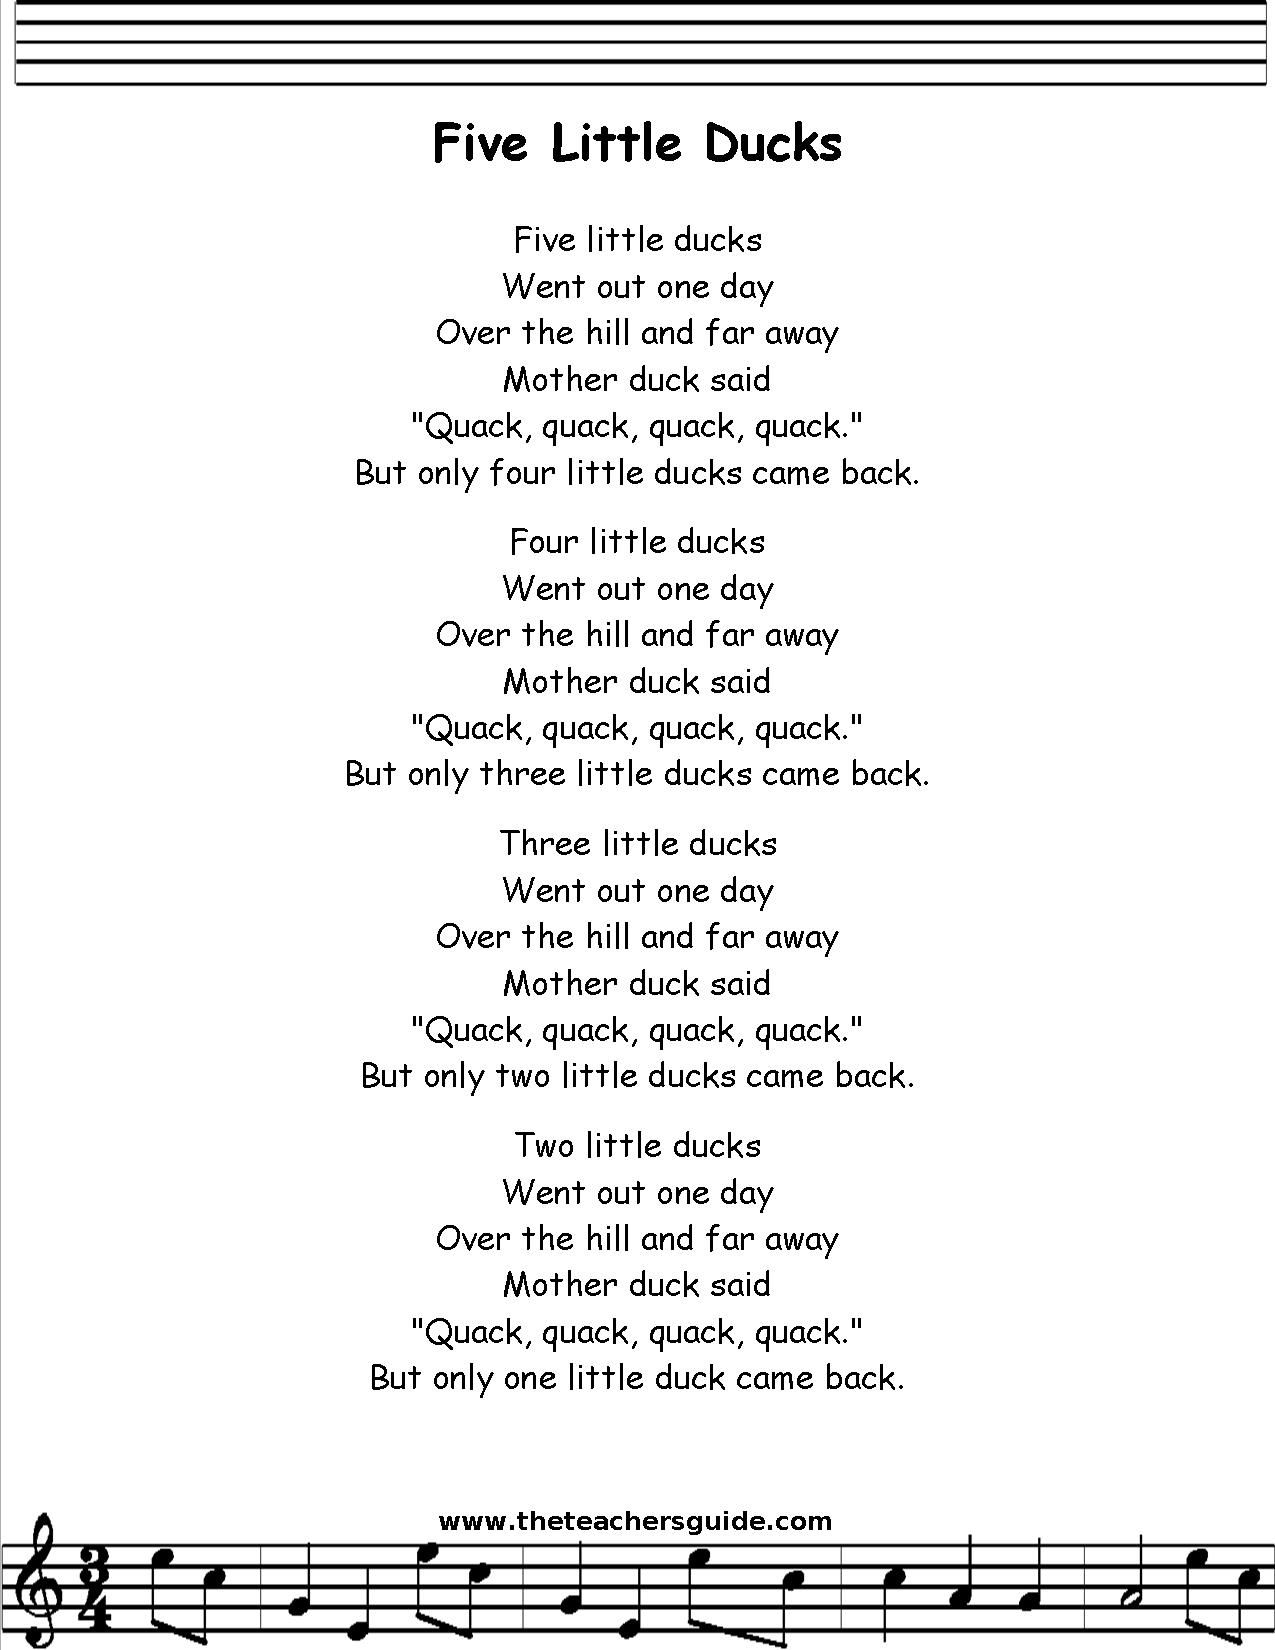 Five Little Ducks Lyrics Printout